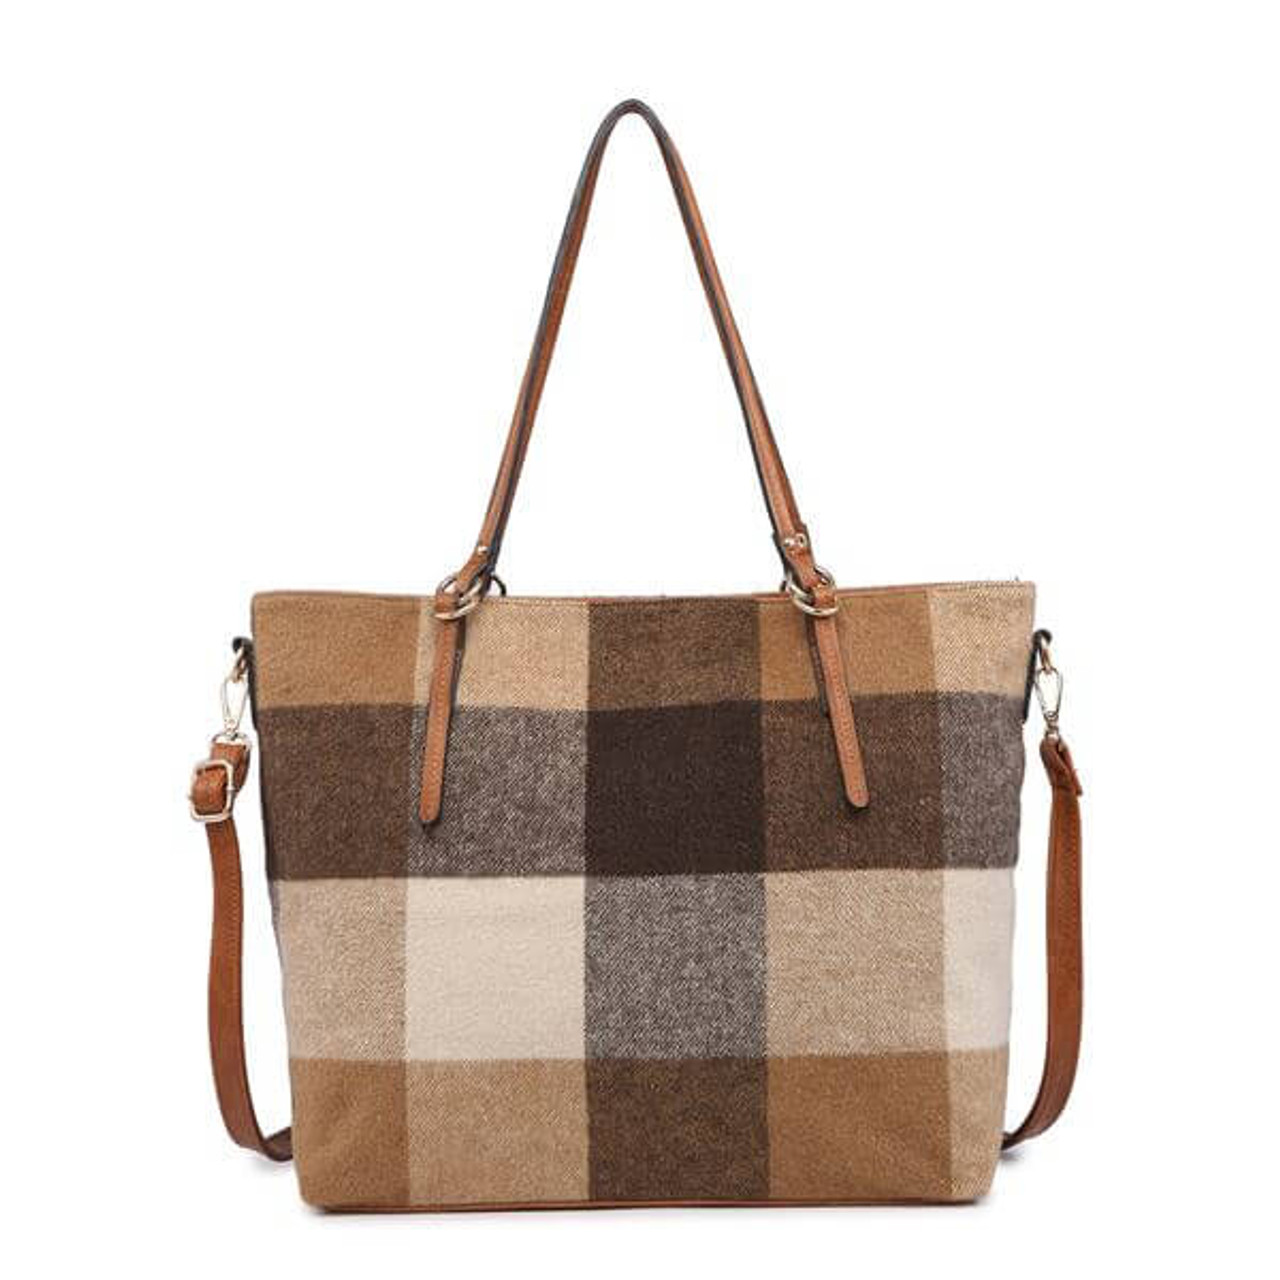 Brown taupe wide plaid check tote bag vegan leather